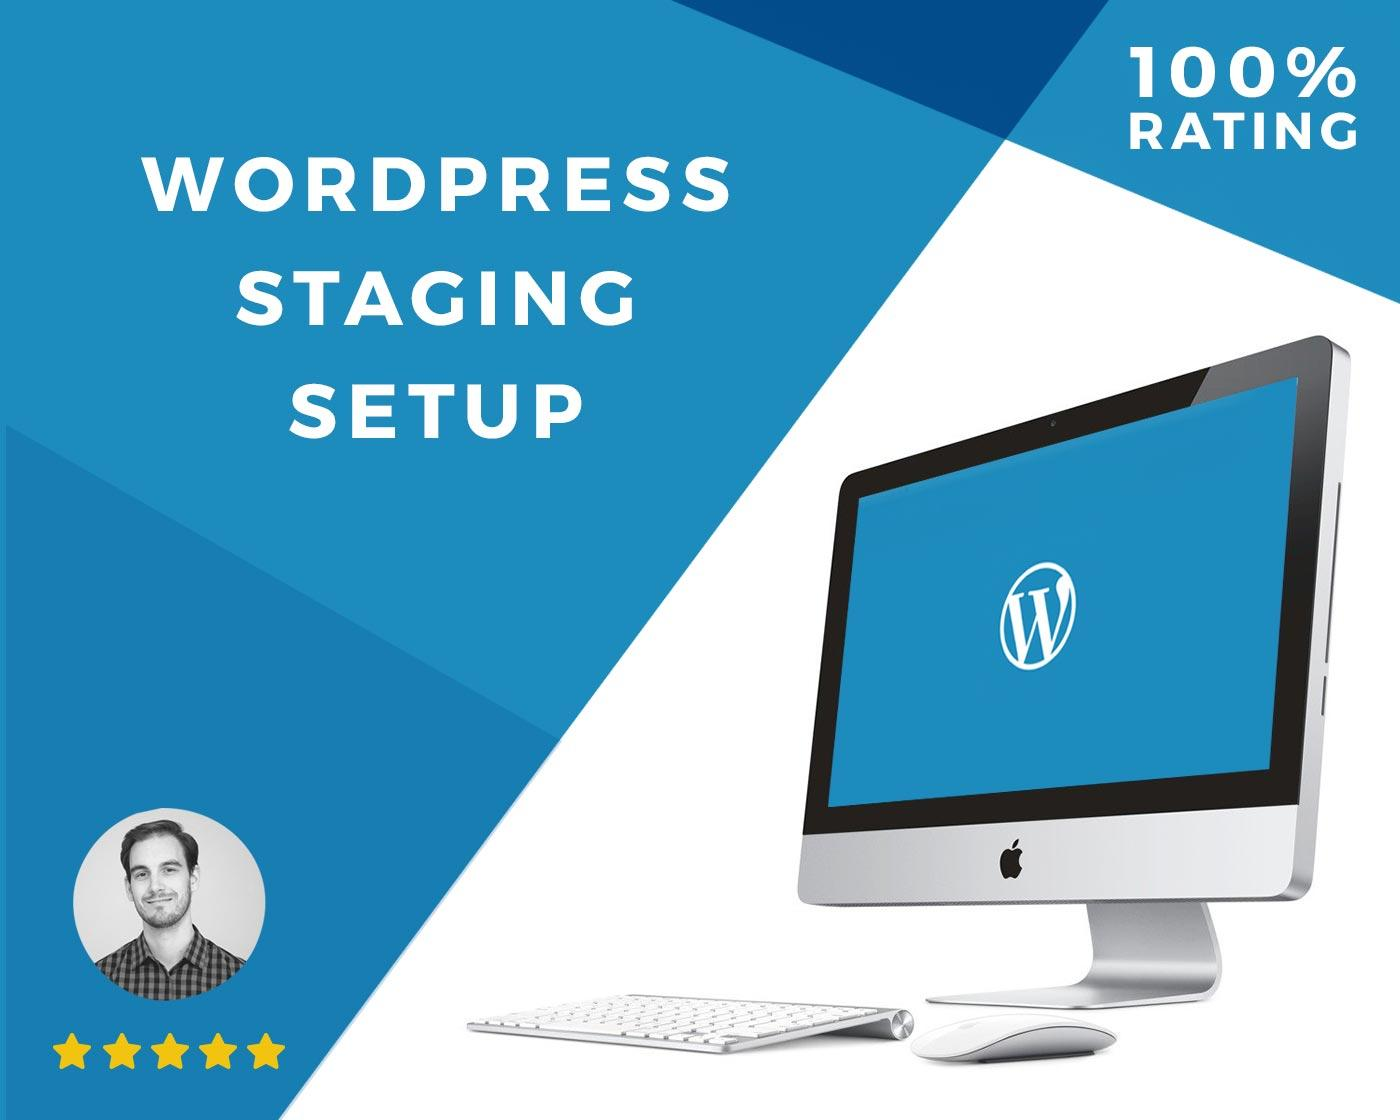 WordPress Staging Site Setup - Develop your new website while alongside your old by Ryan_Carter - 86120